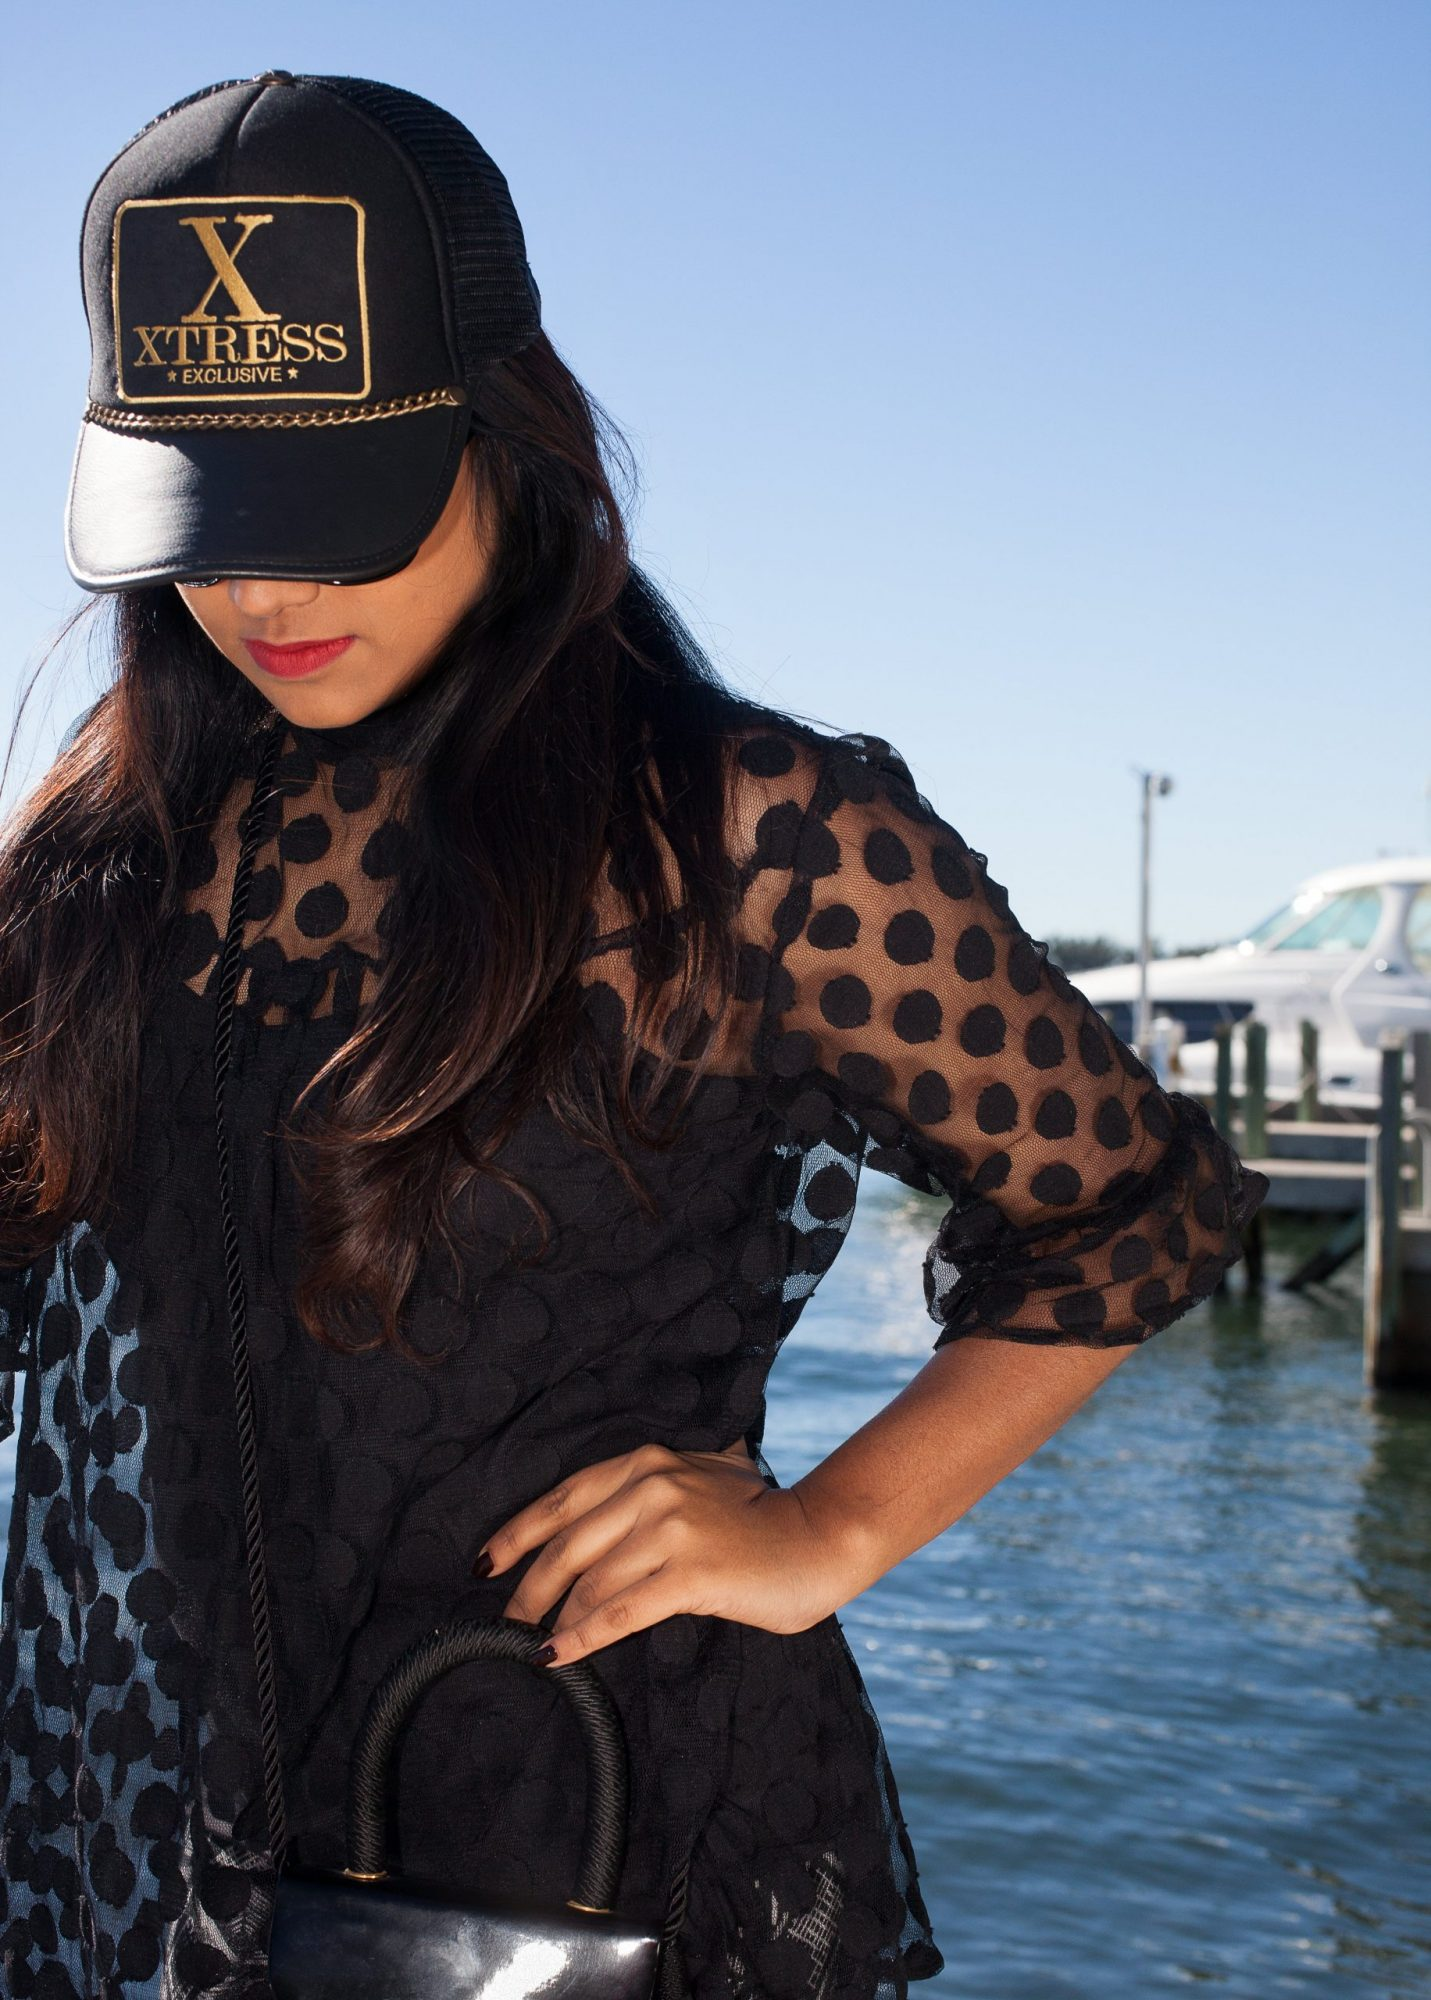 Miami Fashion Blogger Chic Stylista Xtress Exclusive